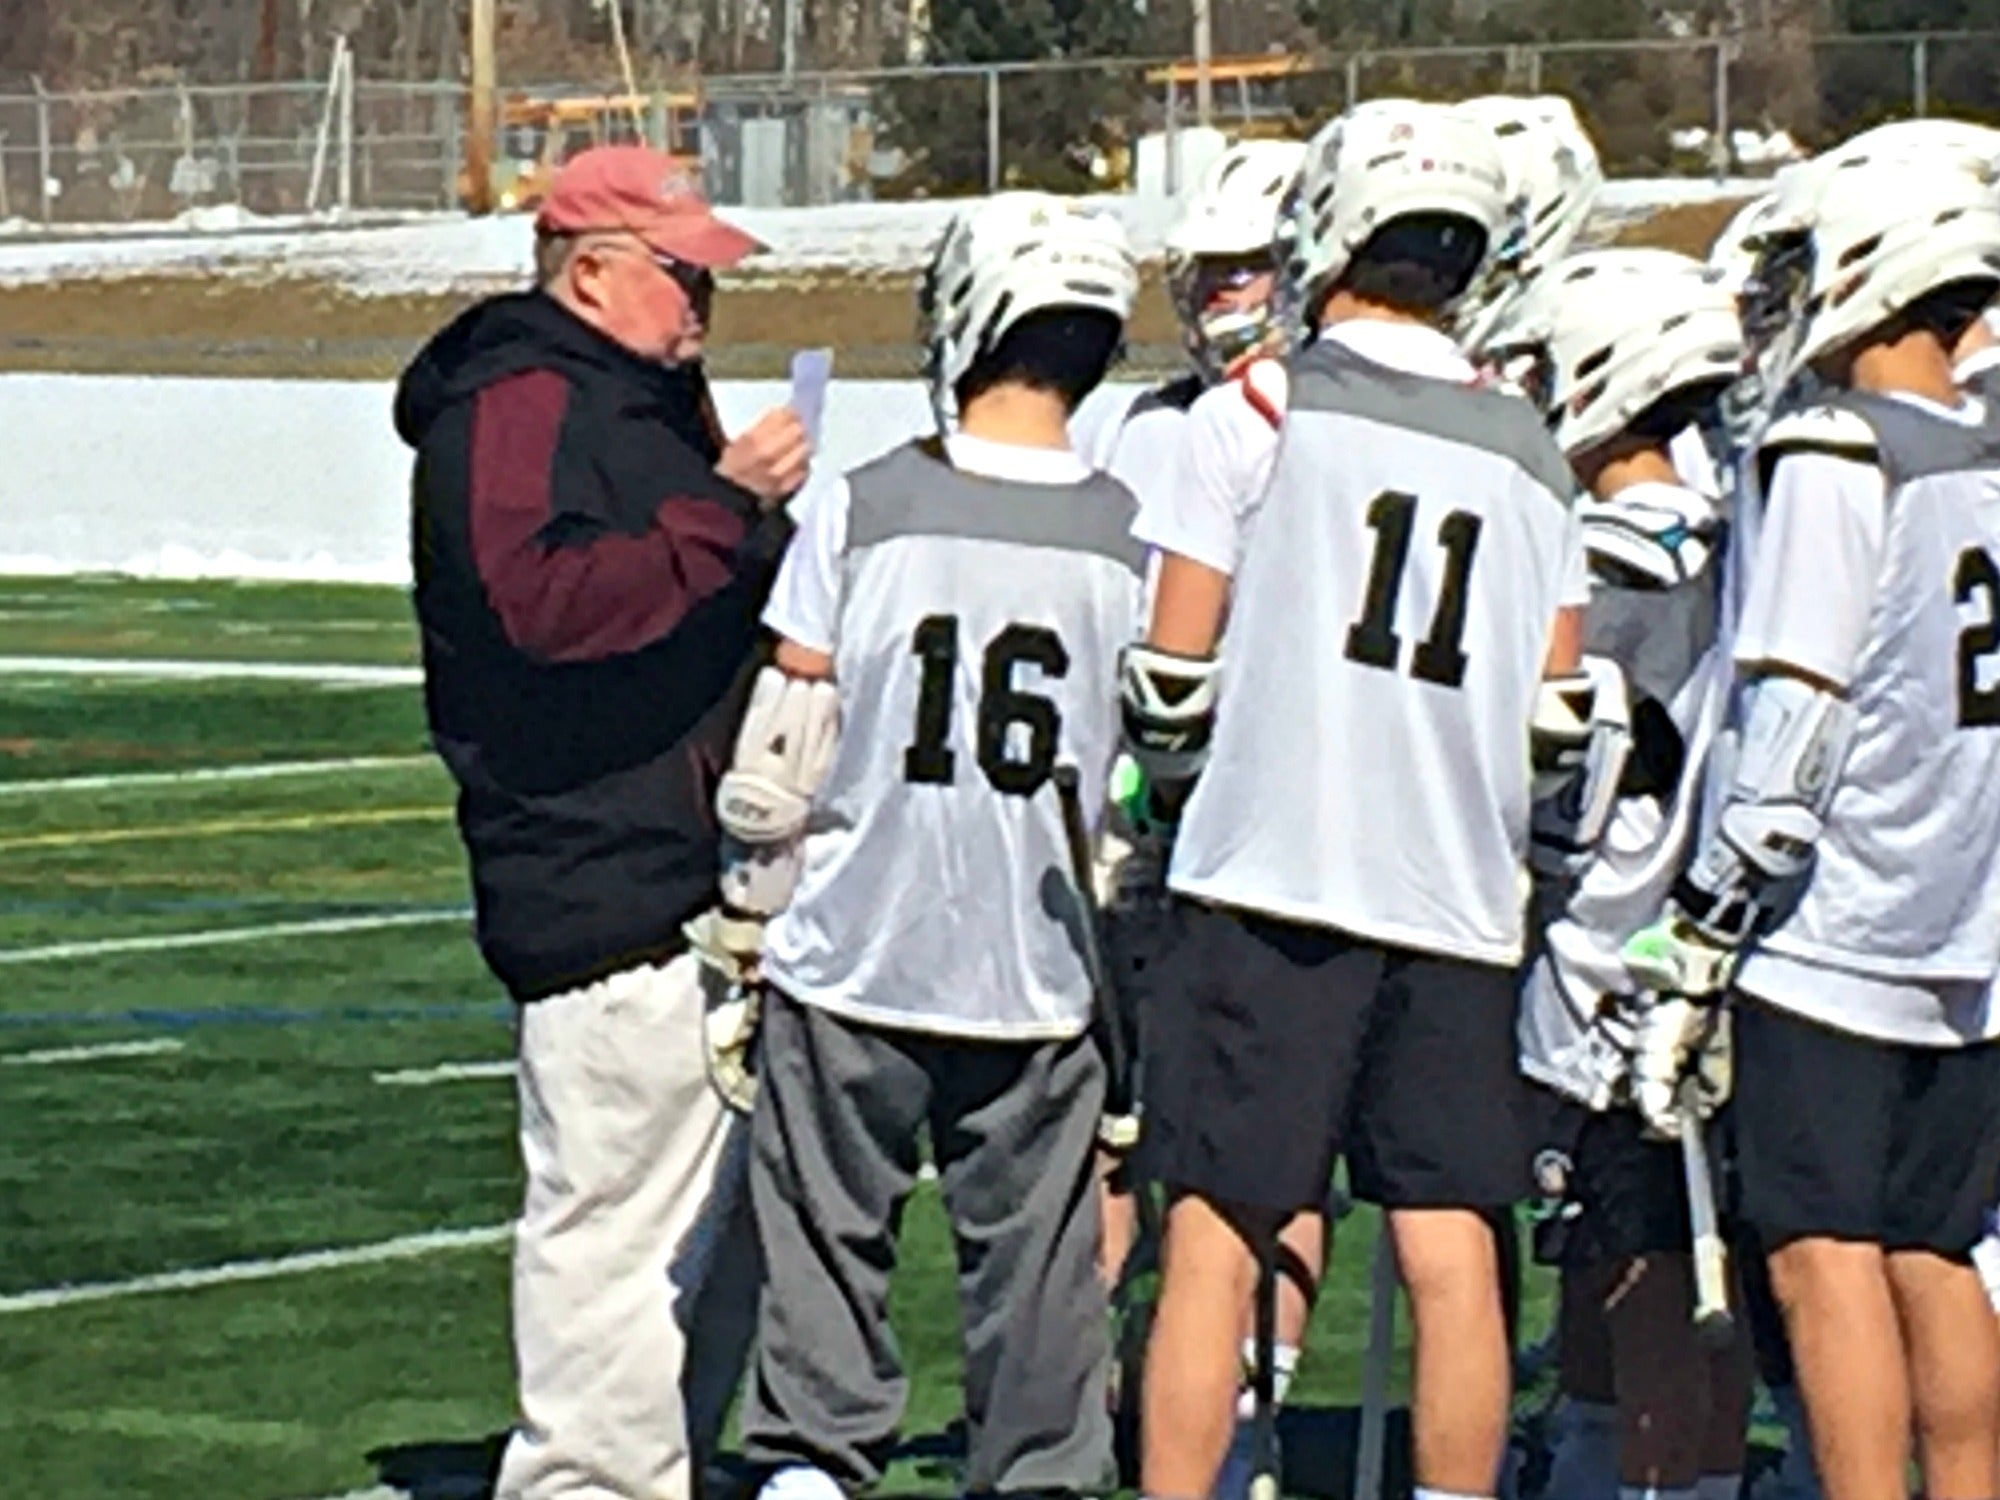 Coach Kevin talking to his team about posiions